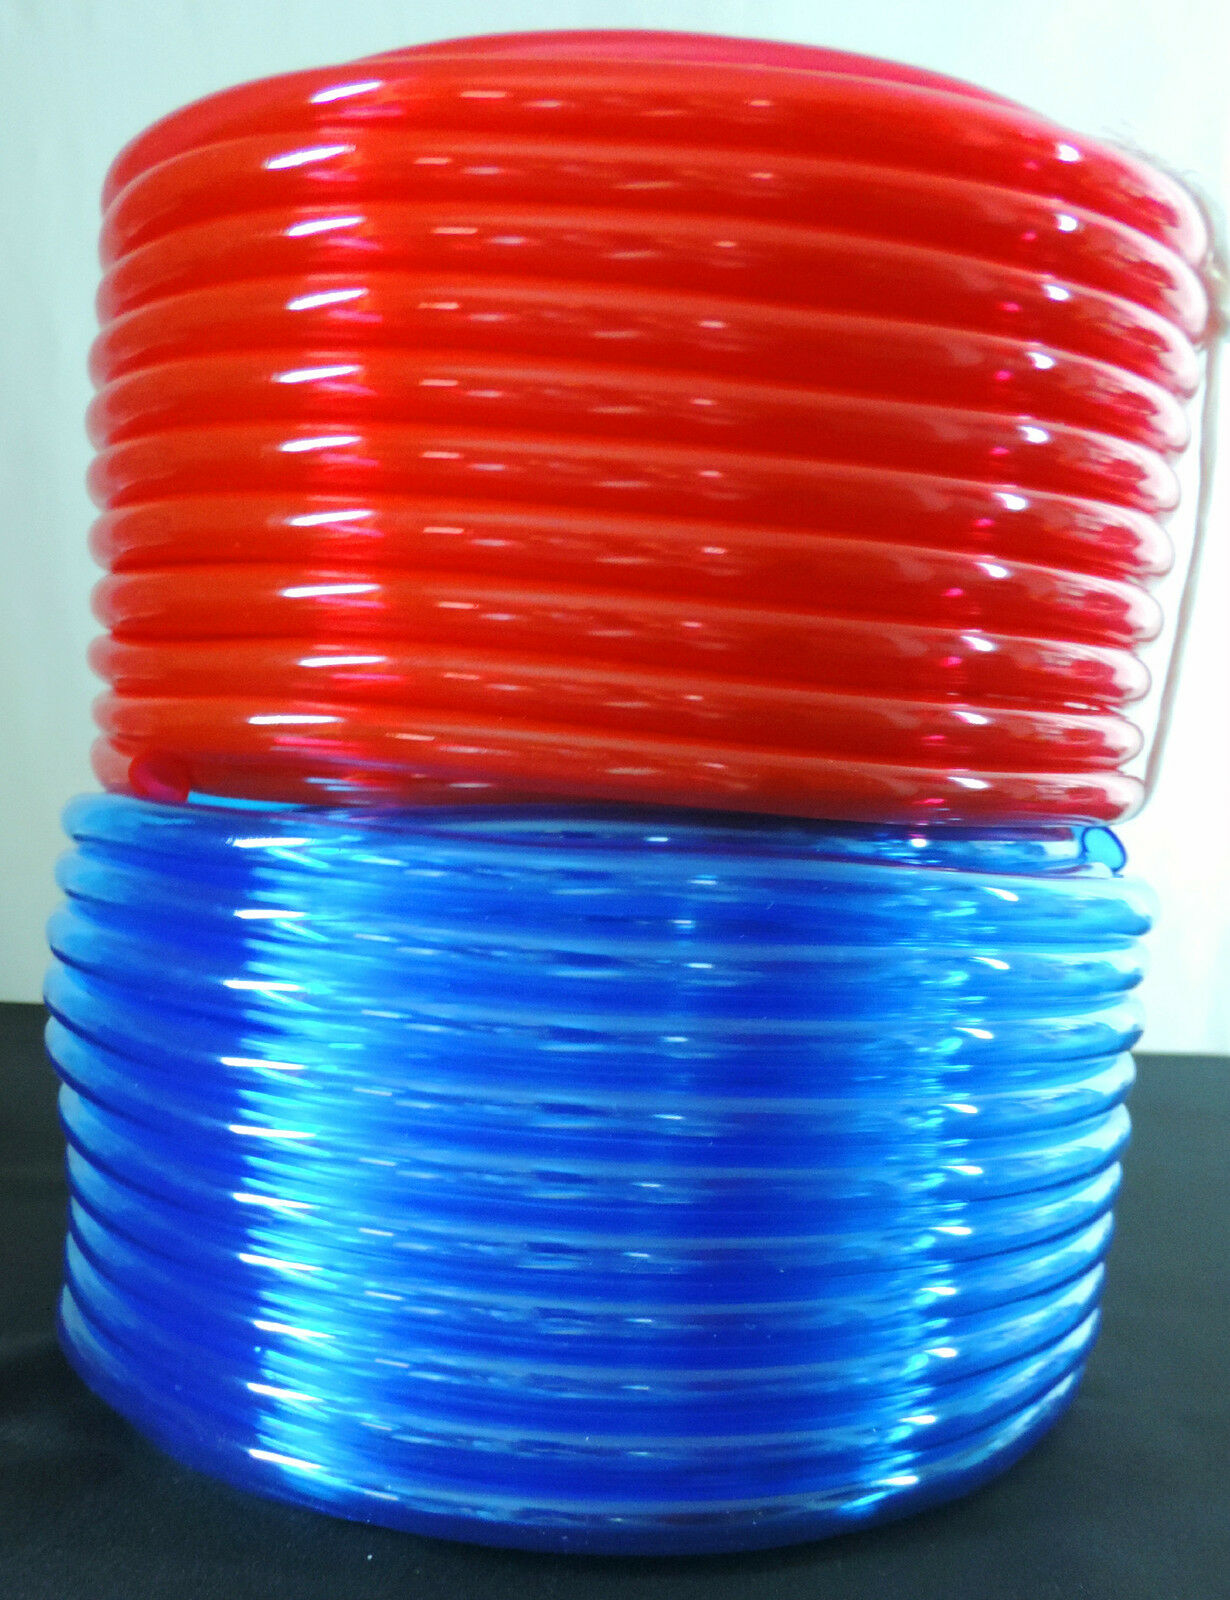 3 4  ID x 1  OD - 50 ft, Translucent Red or bluee Flexible PVC Vinyl Tubing